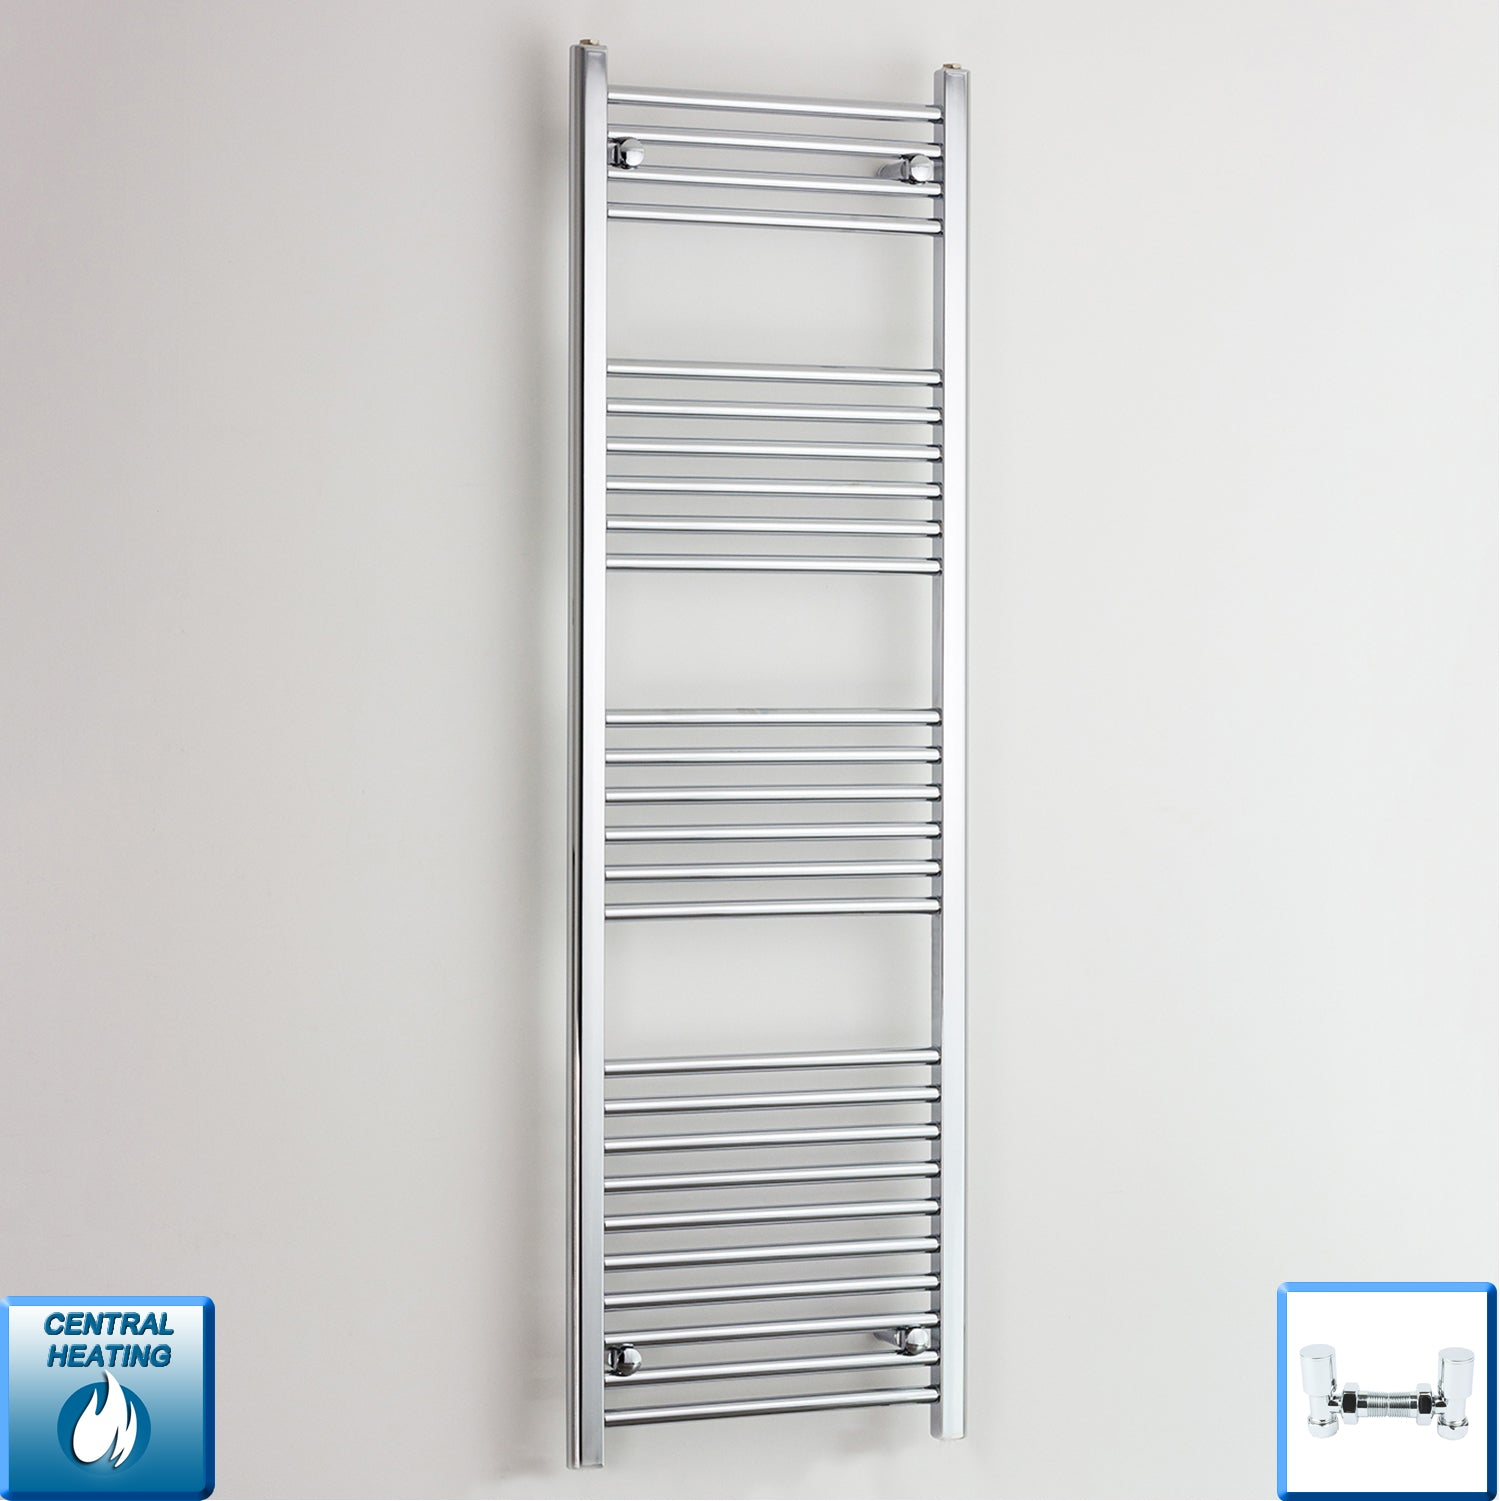 500mm Wide 1600mm High Curved Chrome Heated Towel Rail Radiator HTR,With Angled Valve